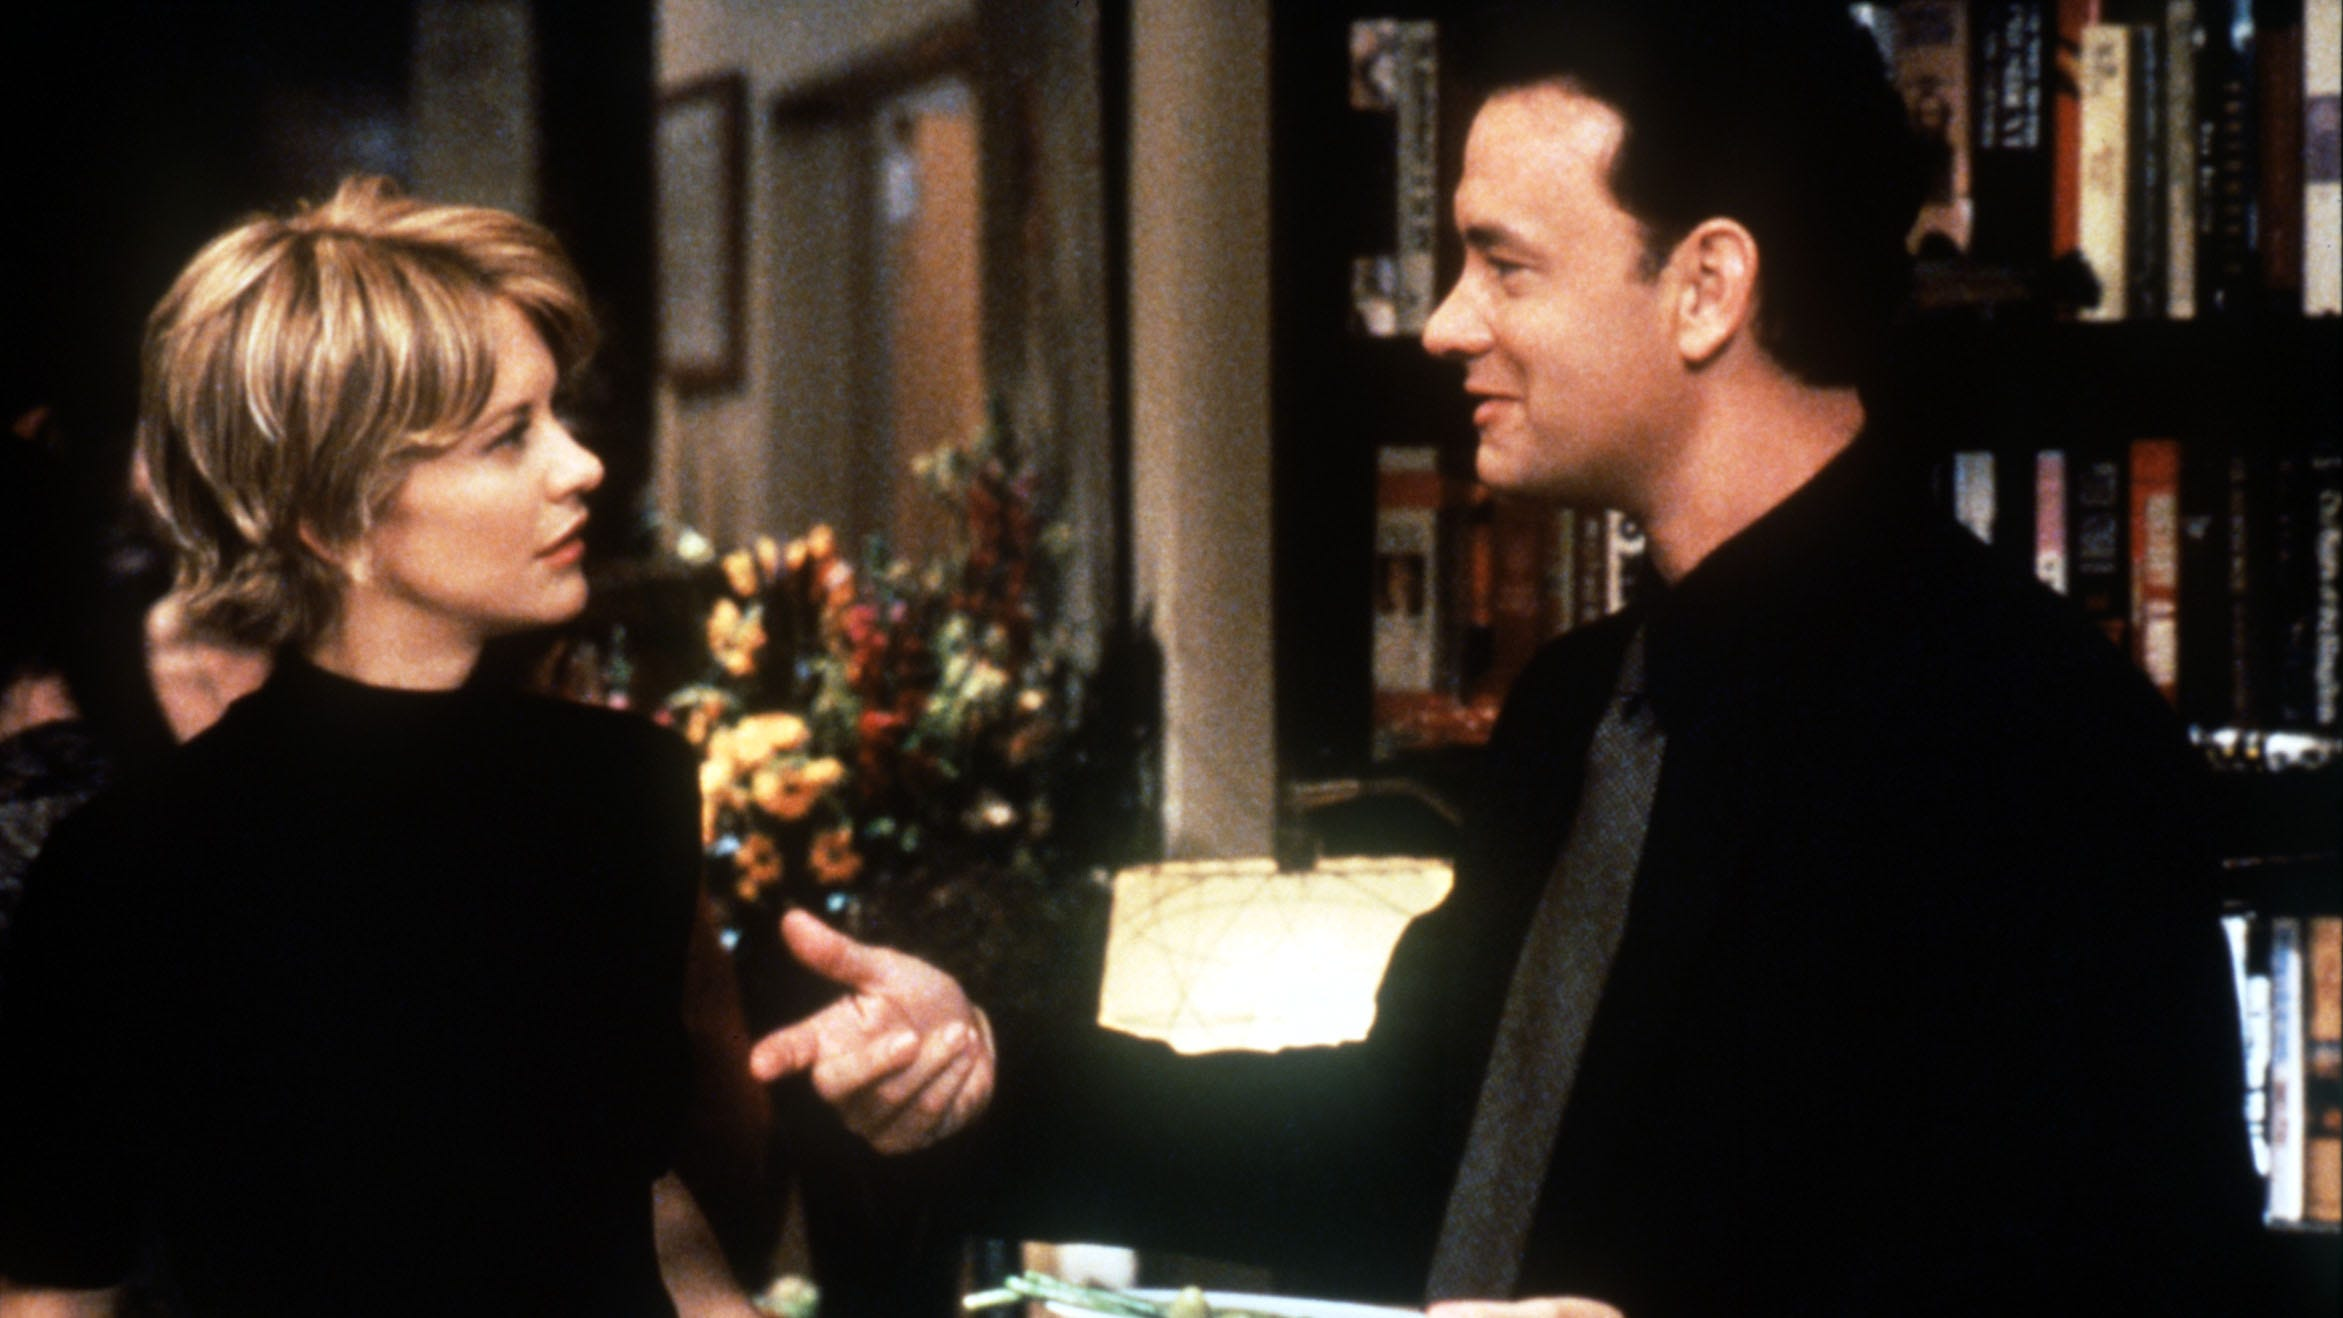 """Tom Hanks and Meg Ryan in a scene from """"You've Got Mail""""... and now you have the AOL dial-up sign-on sounds in your head."""